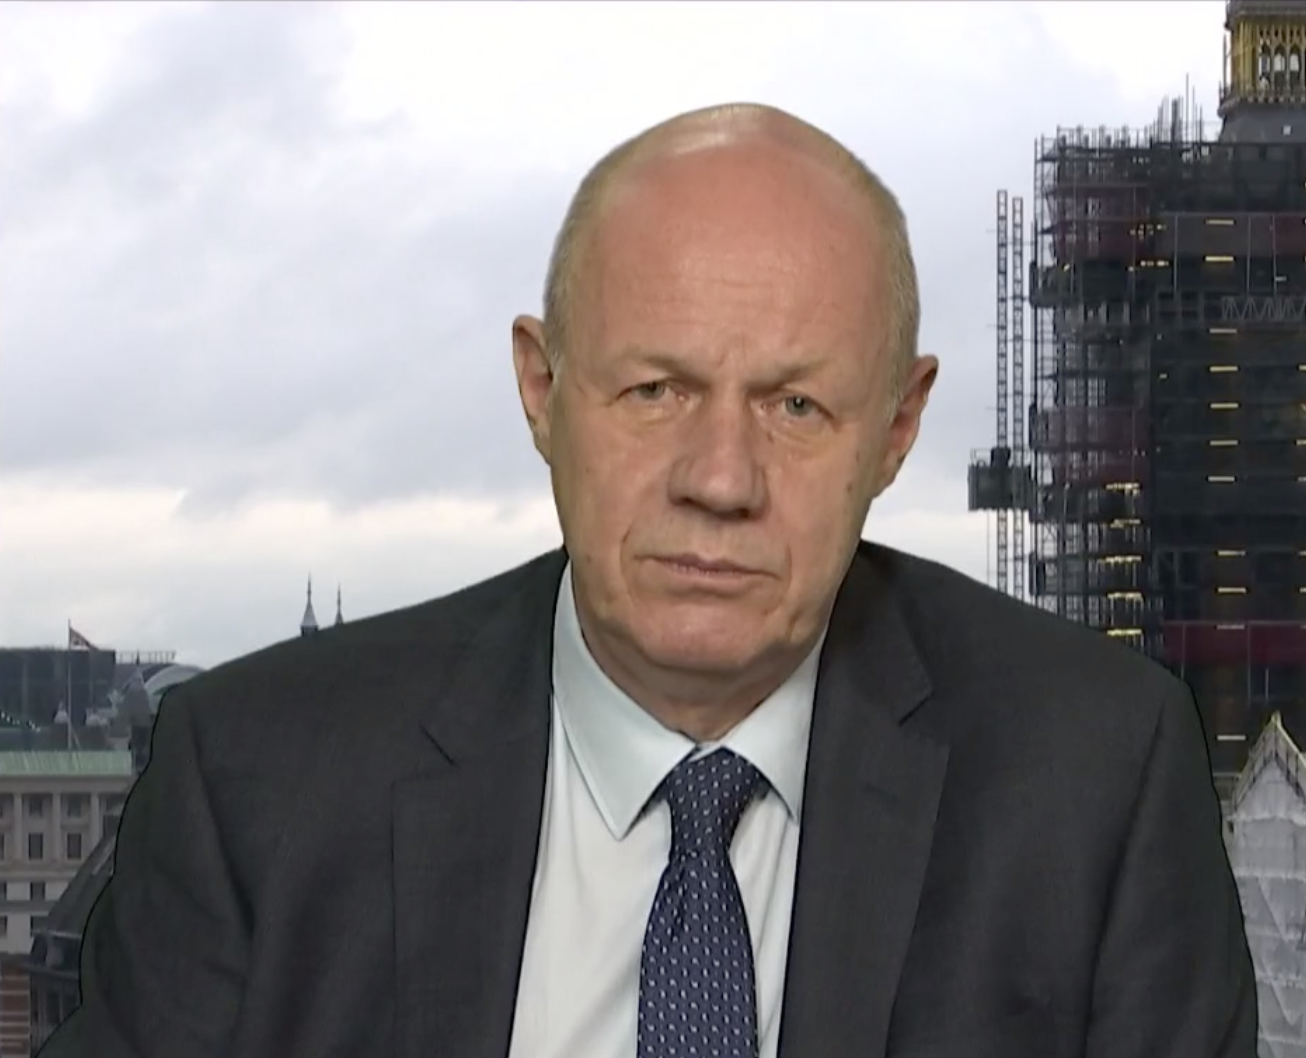 Tory MP Damian Green: 'We are all in this together' - channel 4